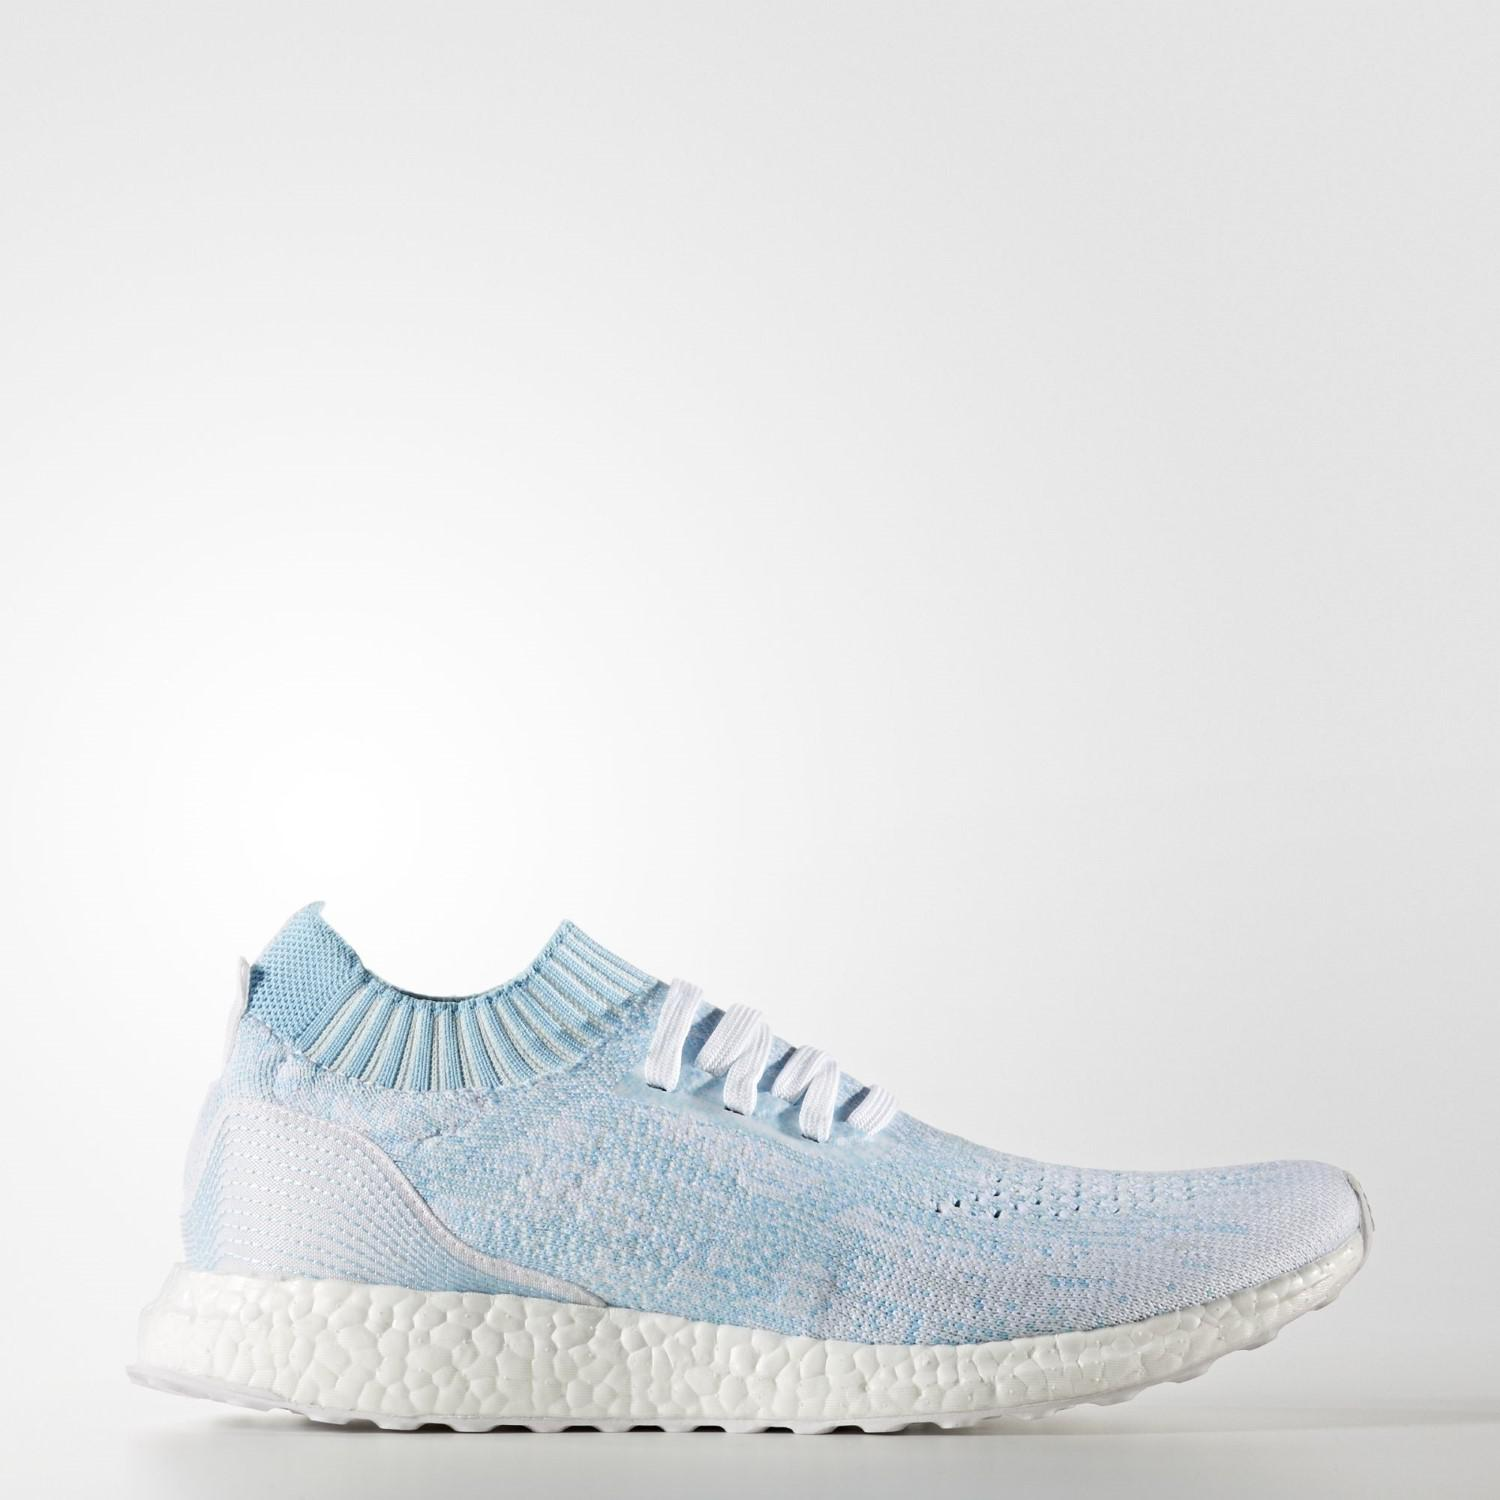 huge discount f7ce4 9149f Lyst - adidas Originals Ultraboost Uncaged Parley Shoes in B